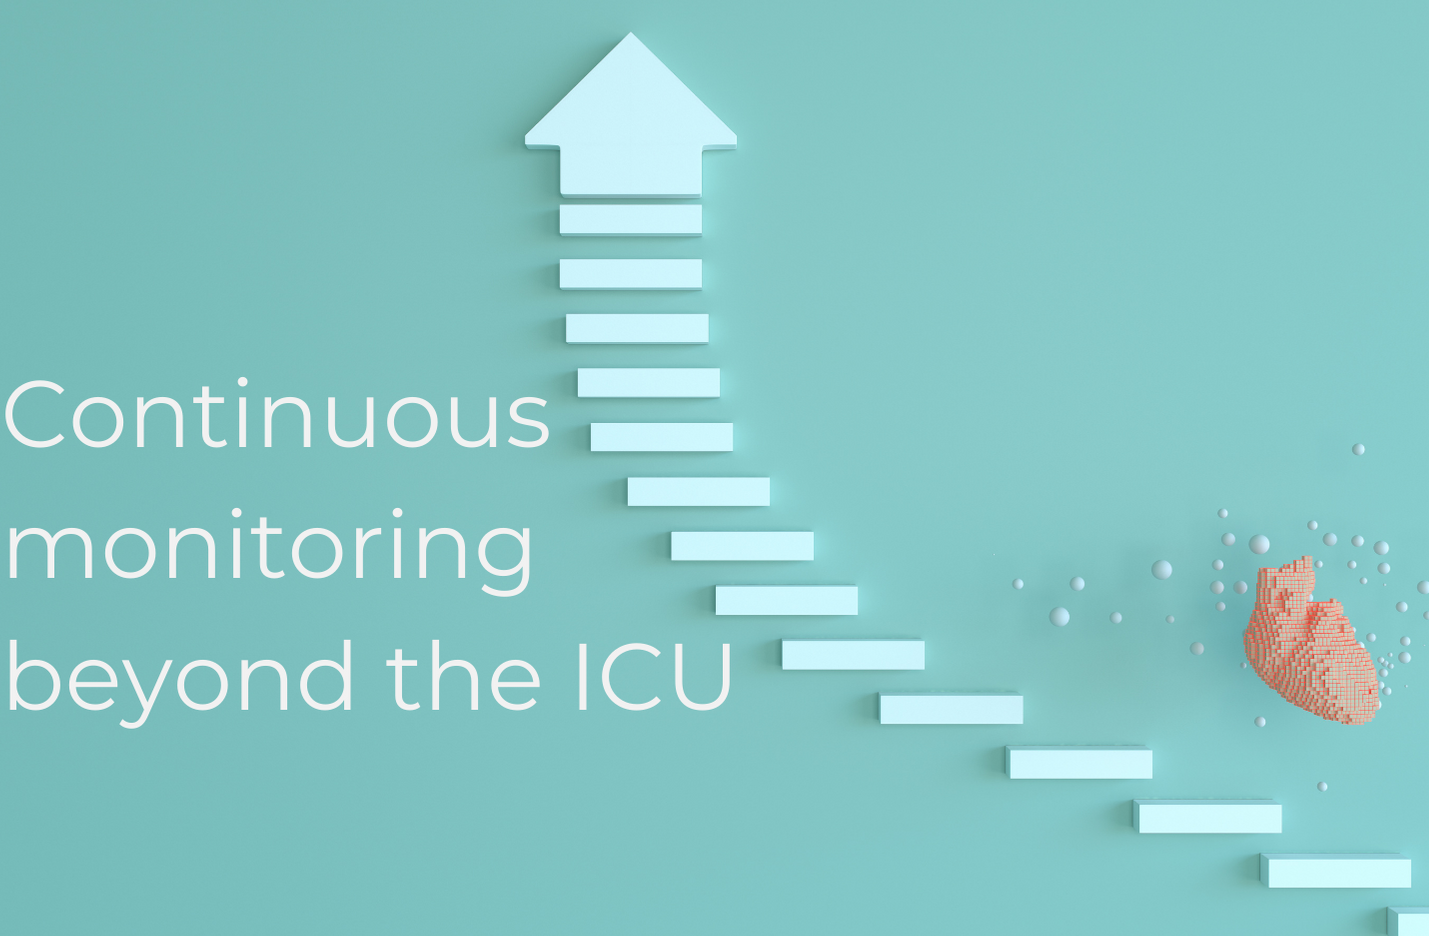 Continuous monitoring beyond the ICU